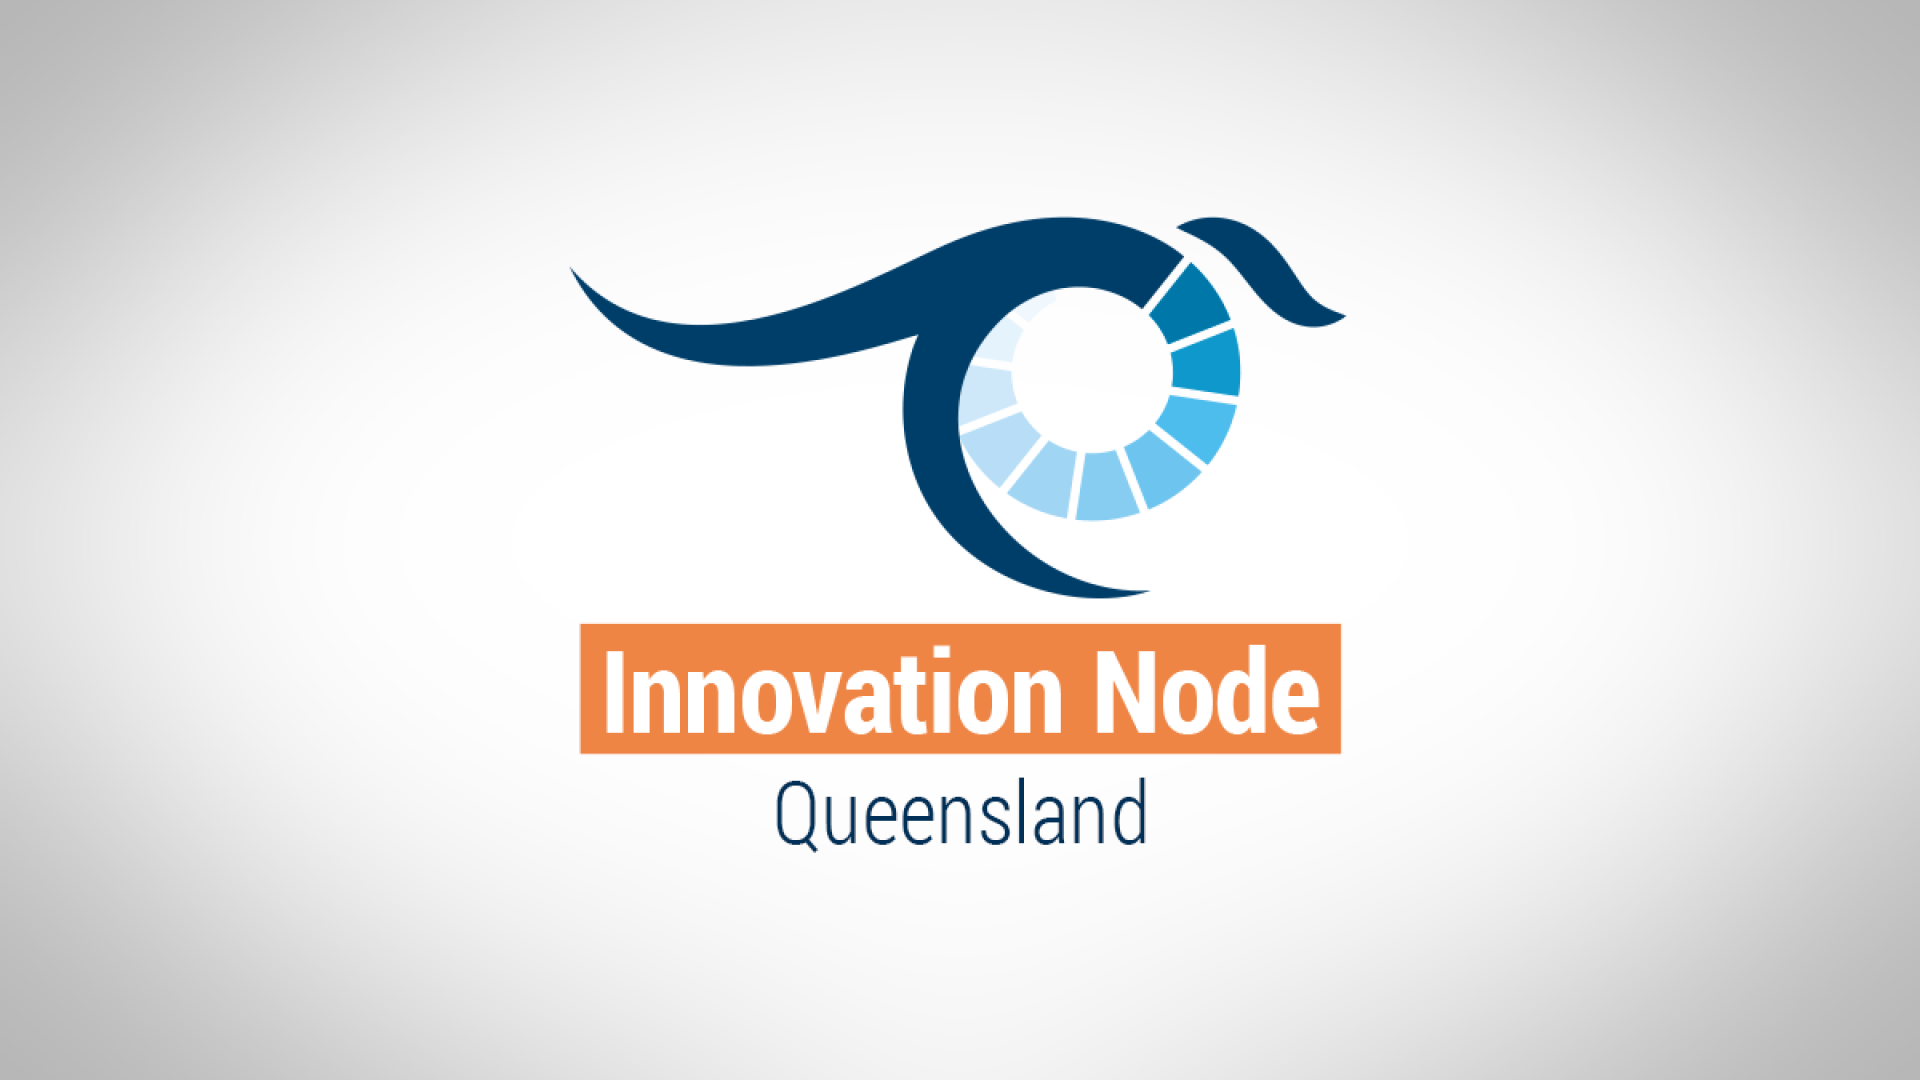 Innovation Node Queensland